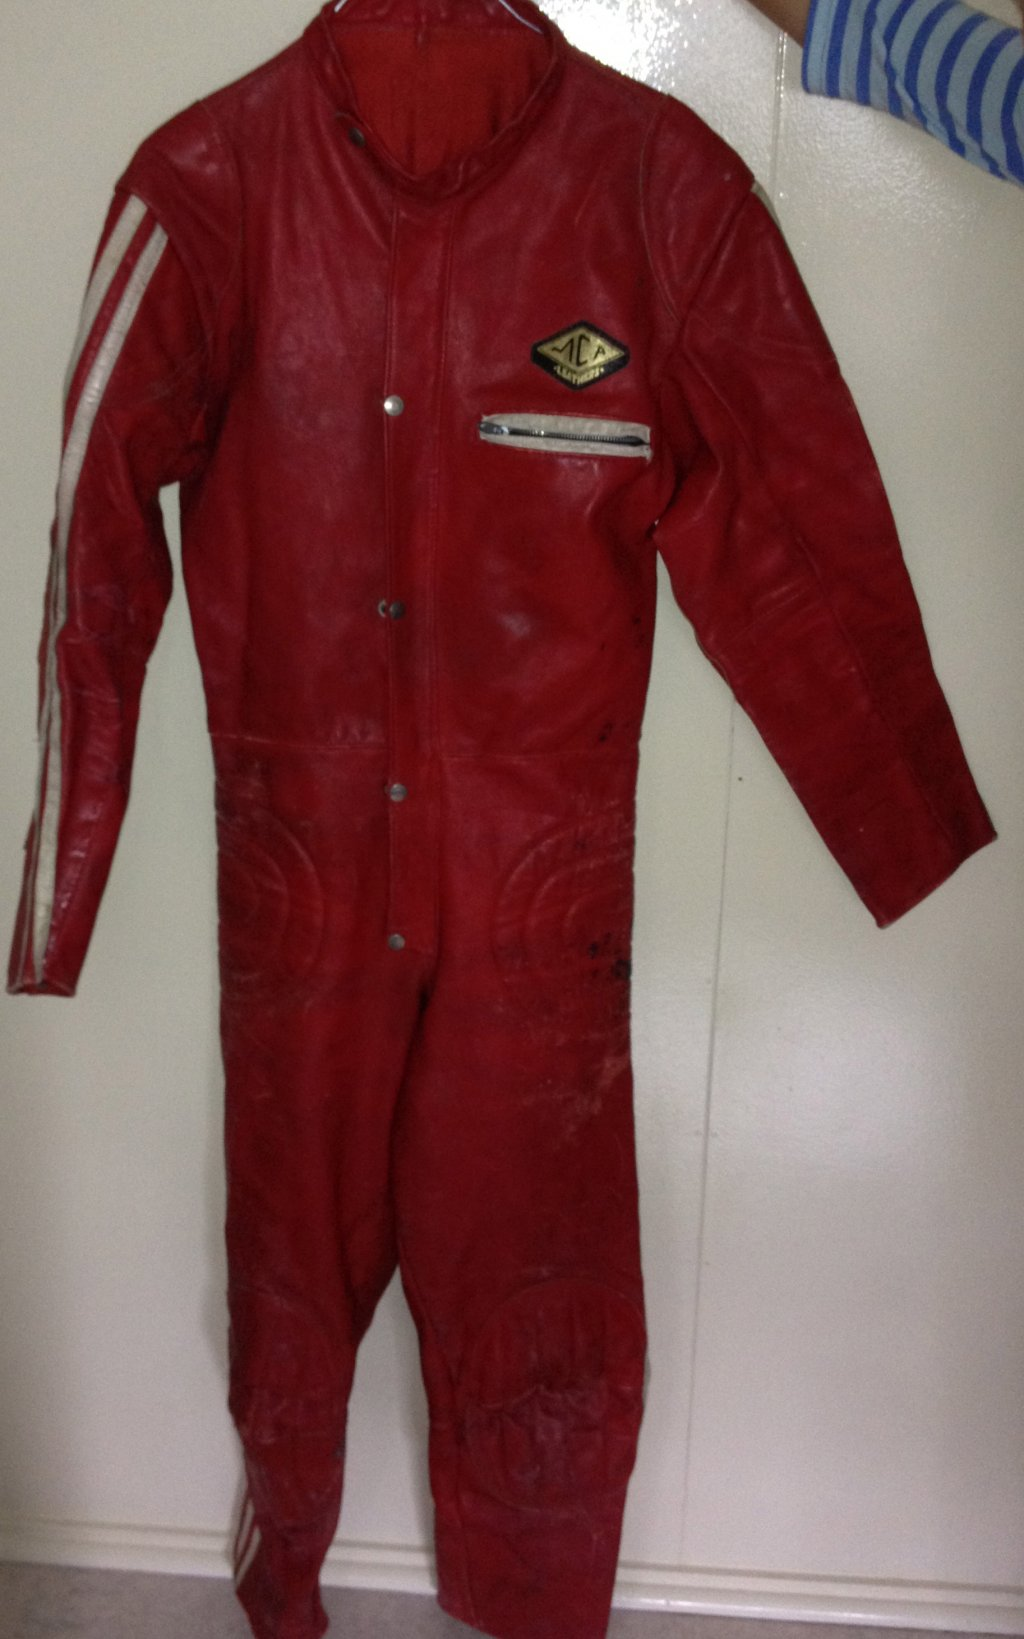 Leather Race SUIT $100 or Swap 4 Larger Size